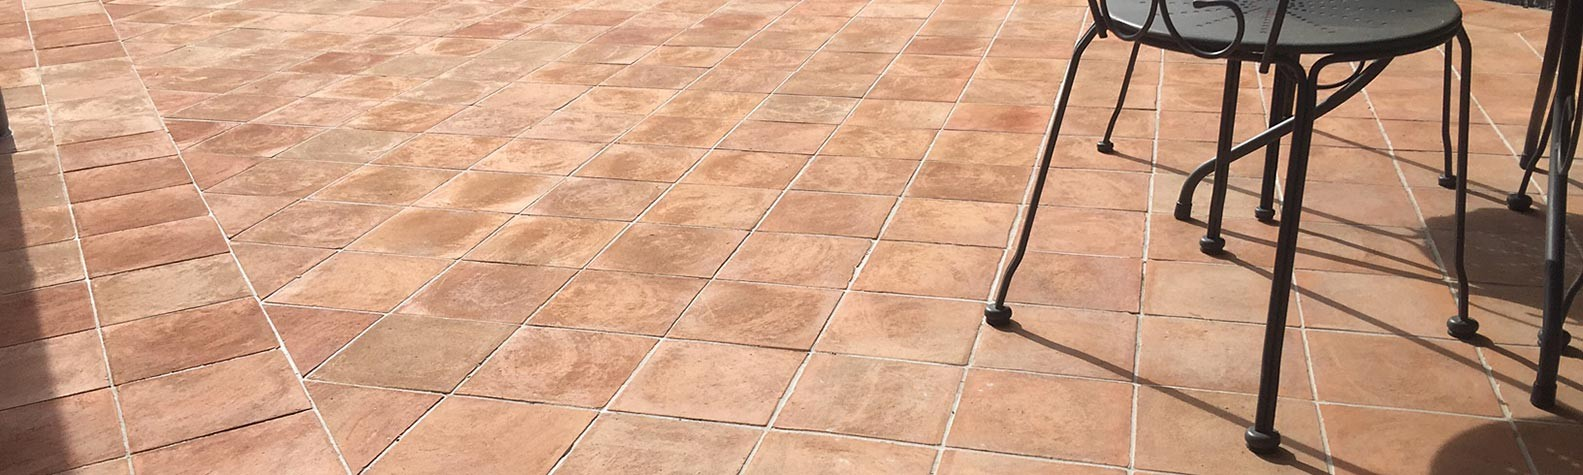 Outdoor terracotta tile